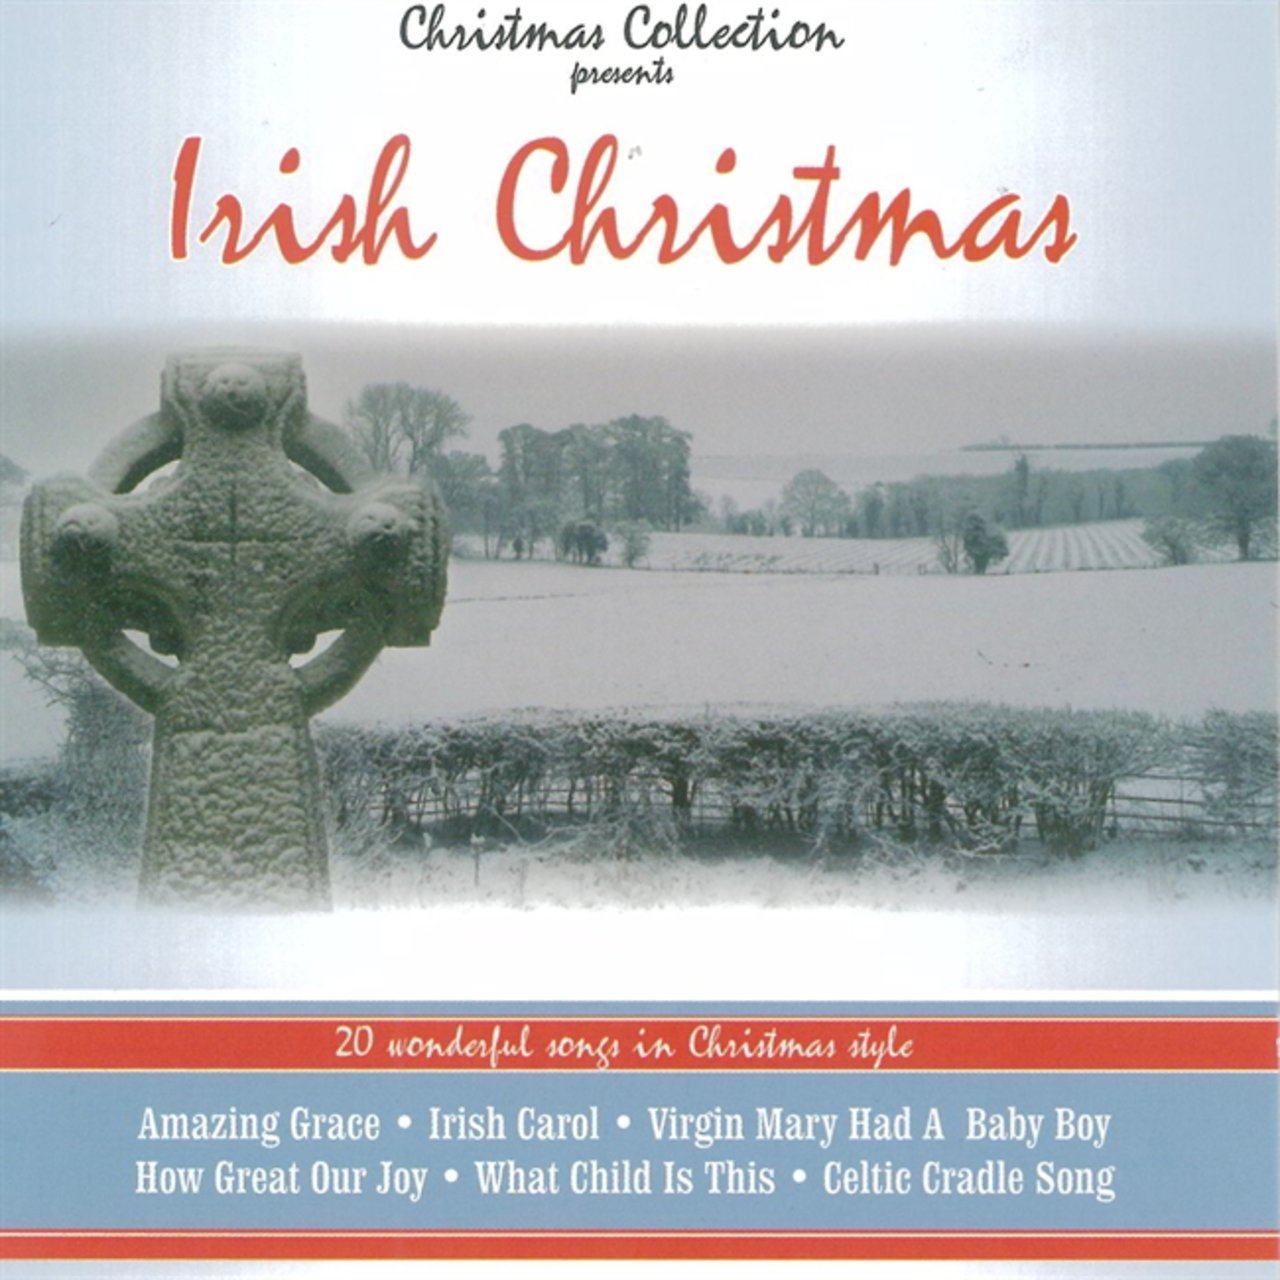 TIDAL: Listen to Irish Christmas on TIDAL